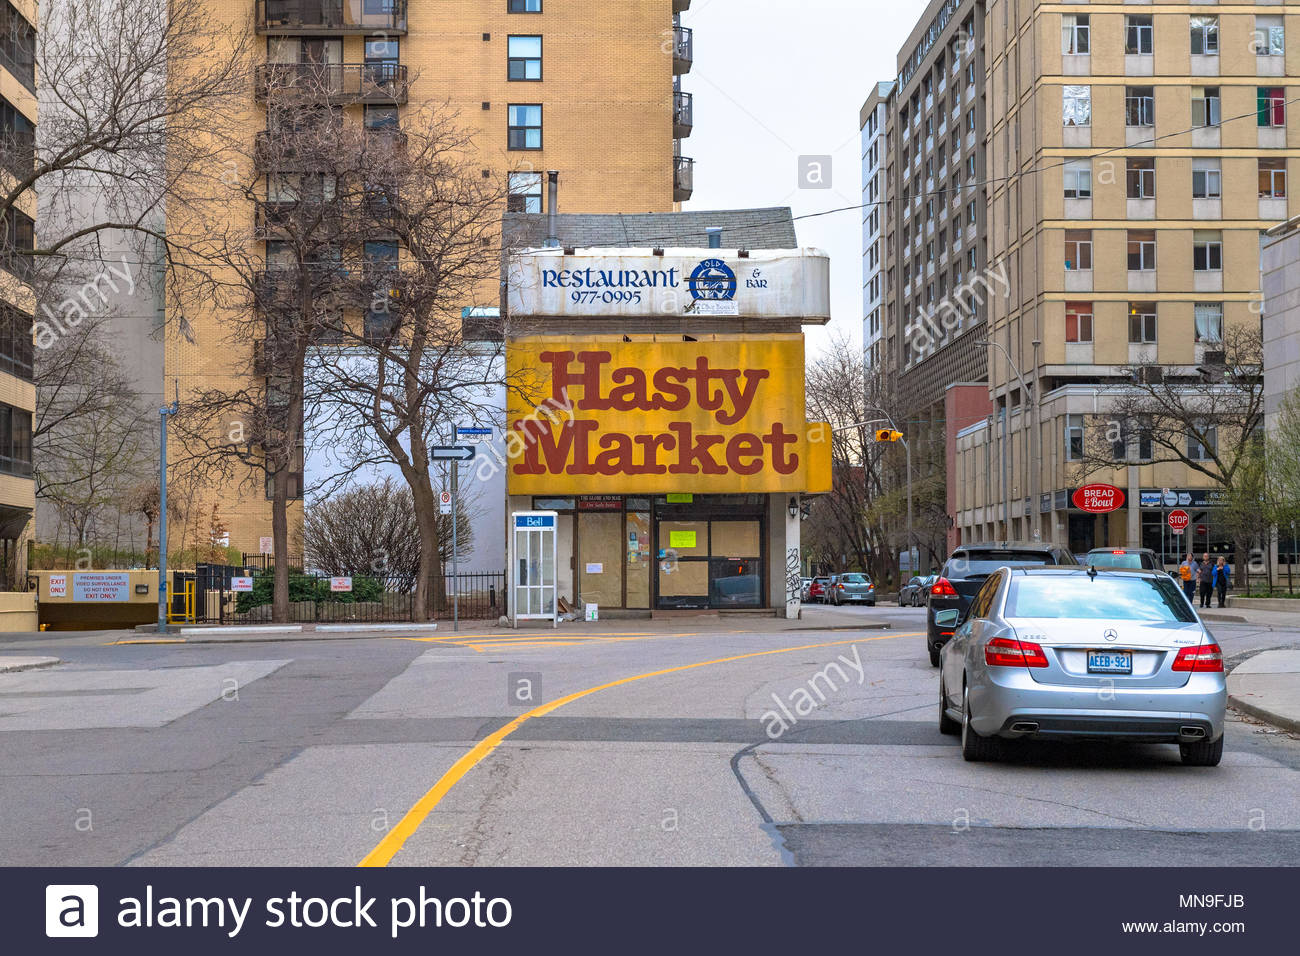 Hasty Market old building contrasting with the tall buildings in the downtown district - Stock Image